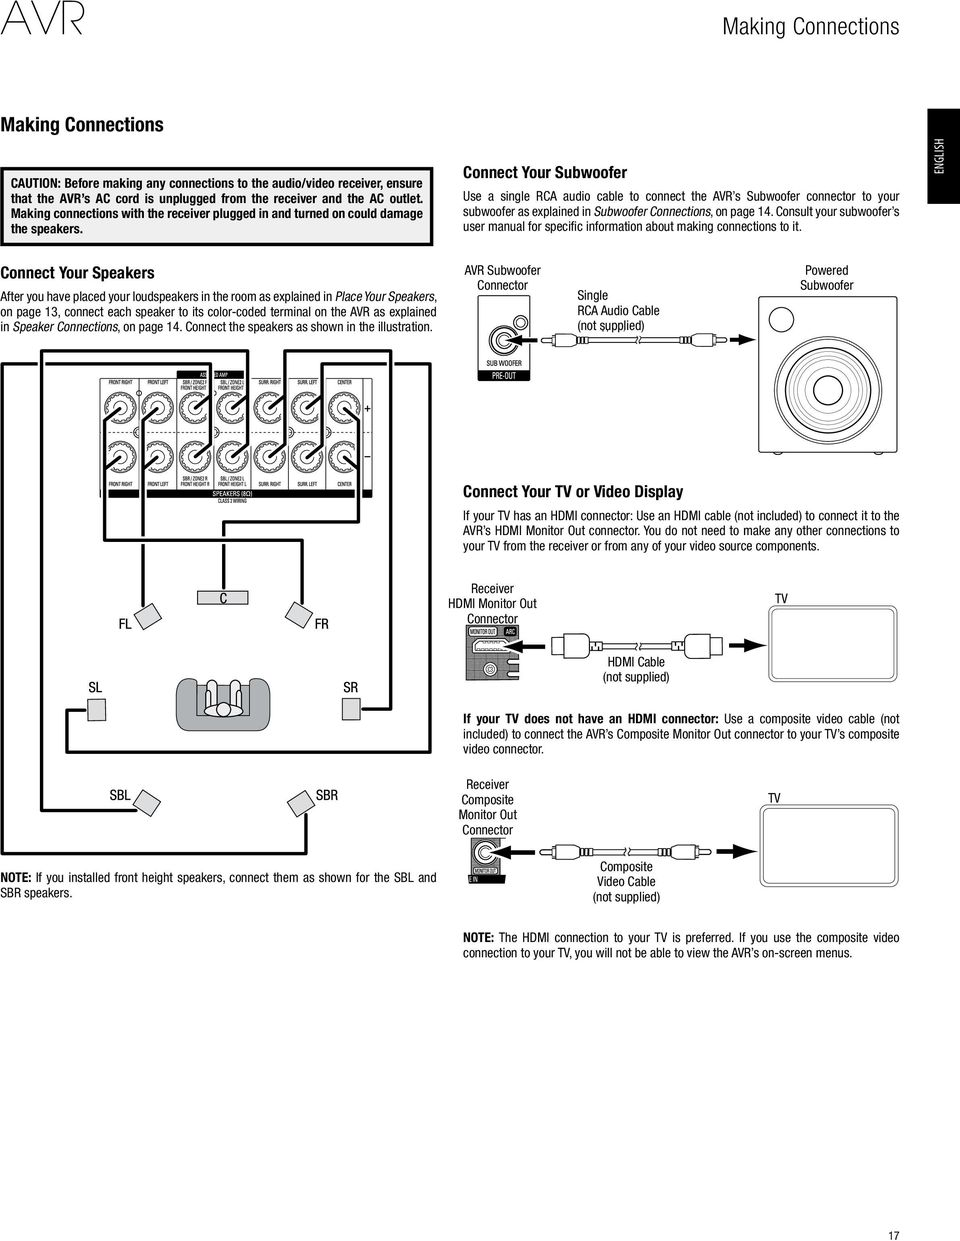 Avr 3650 365 2650 265 Audio Video Receiver Pdf Wiring Diagrams Of Tv And Home Stereo Components With Av Surround Connect Your Subwoofer Use A Single Rca Cable To The S Connector